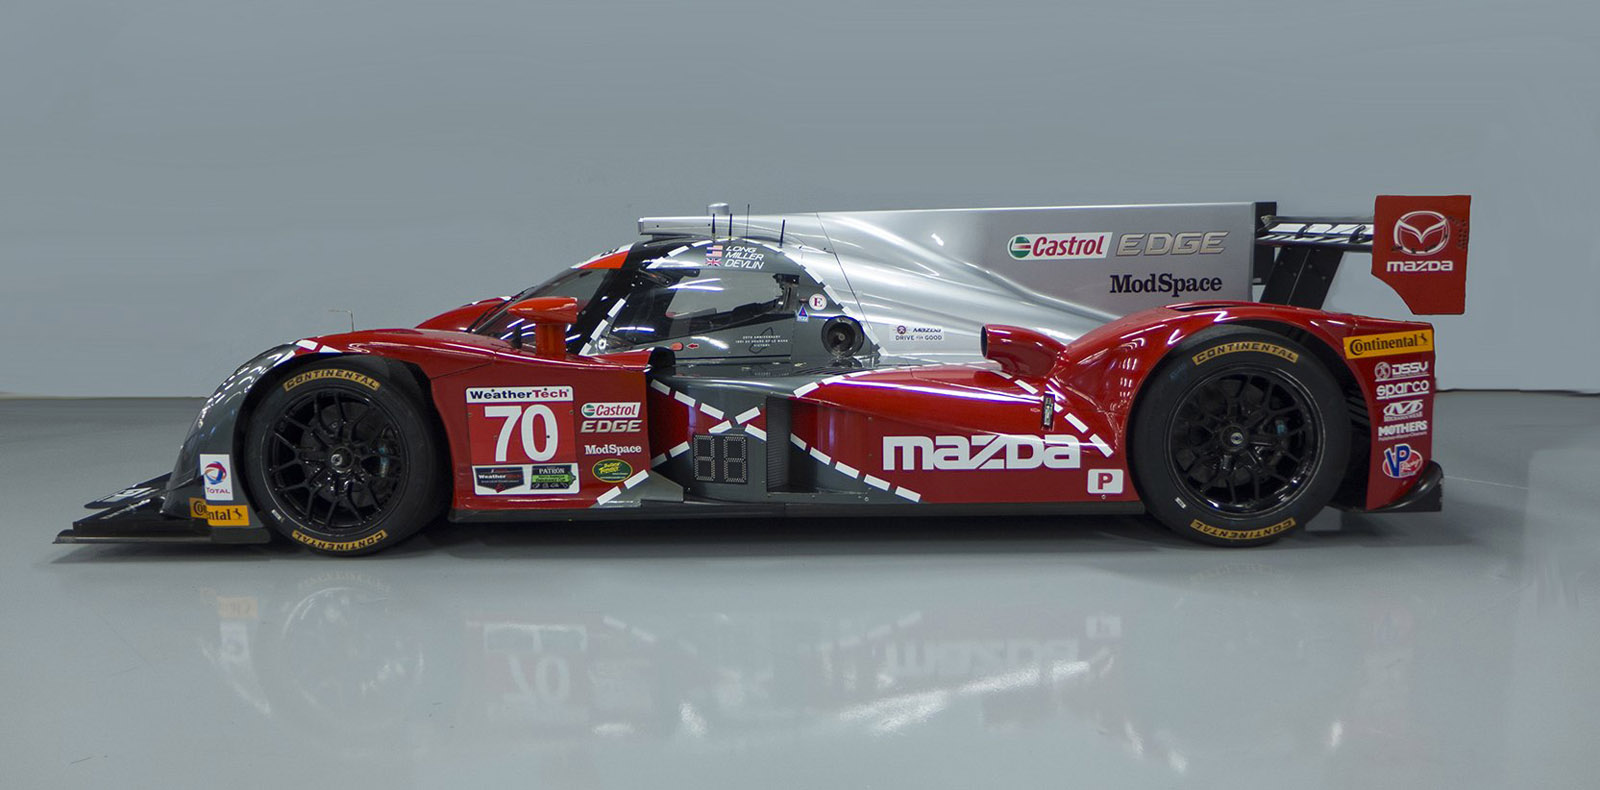 mazda commemorates 1991 le mans win with throwback livery. Black Bedroom Furniture Sets. Home Design Ideas